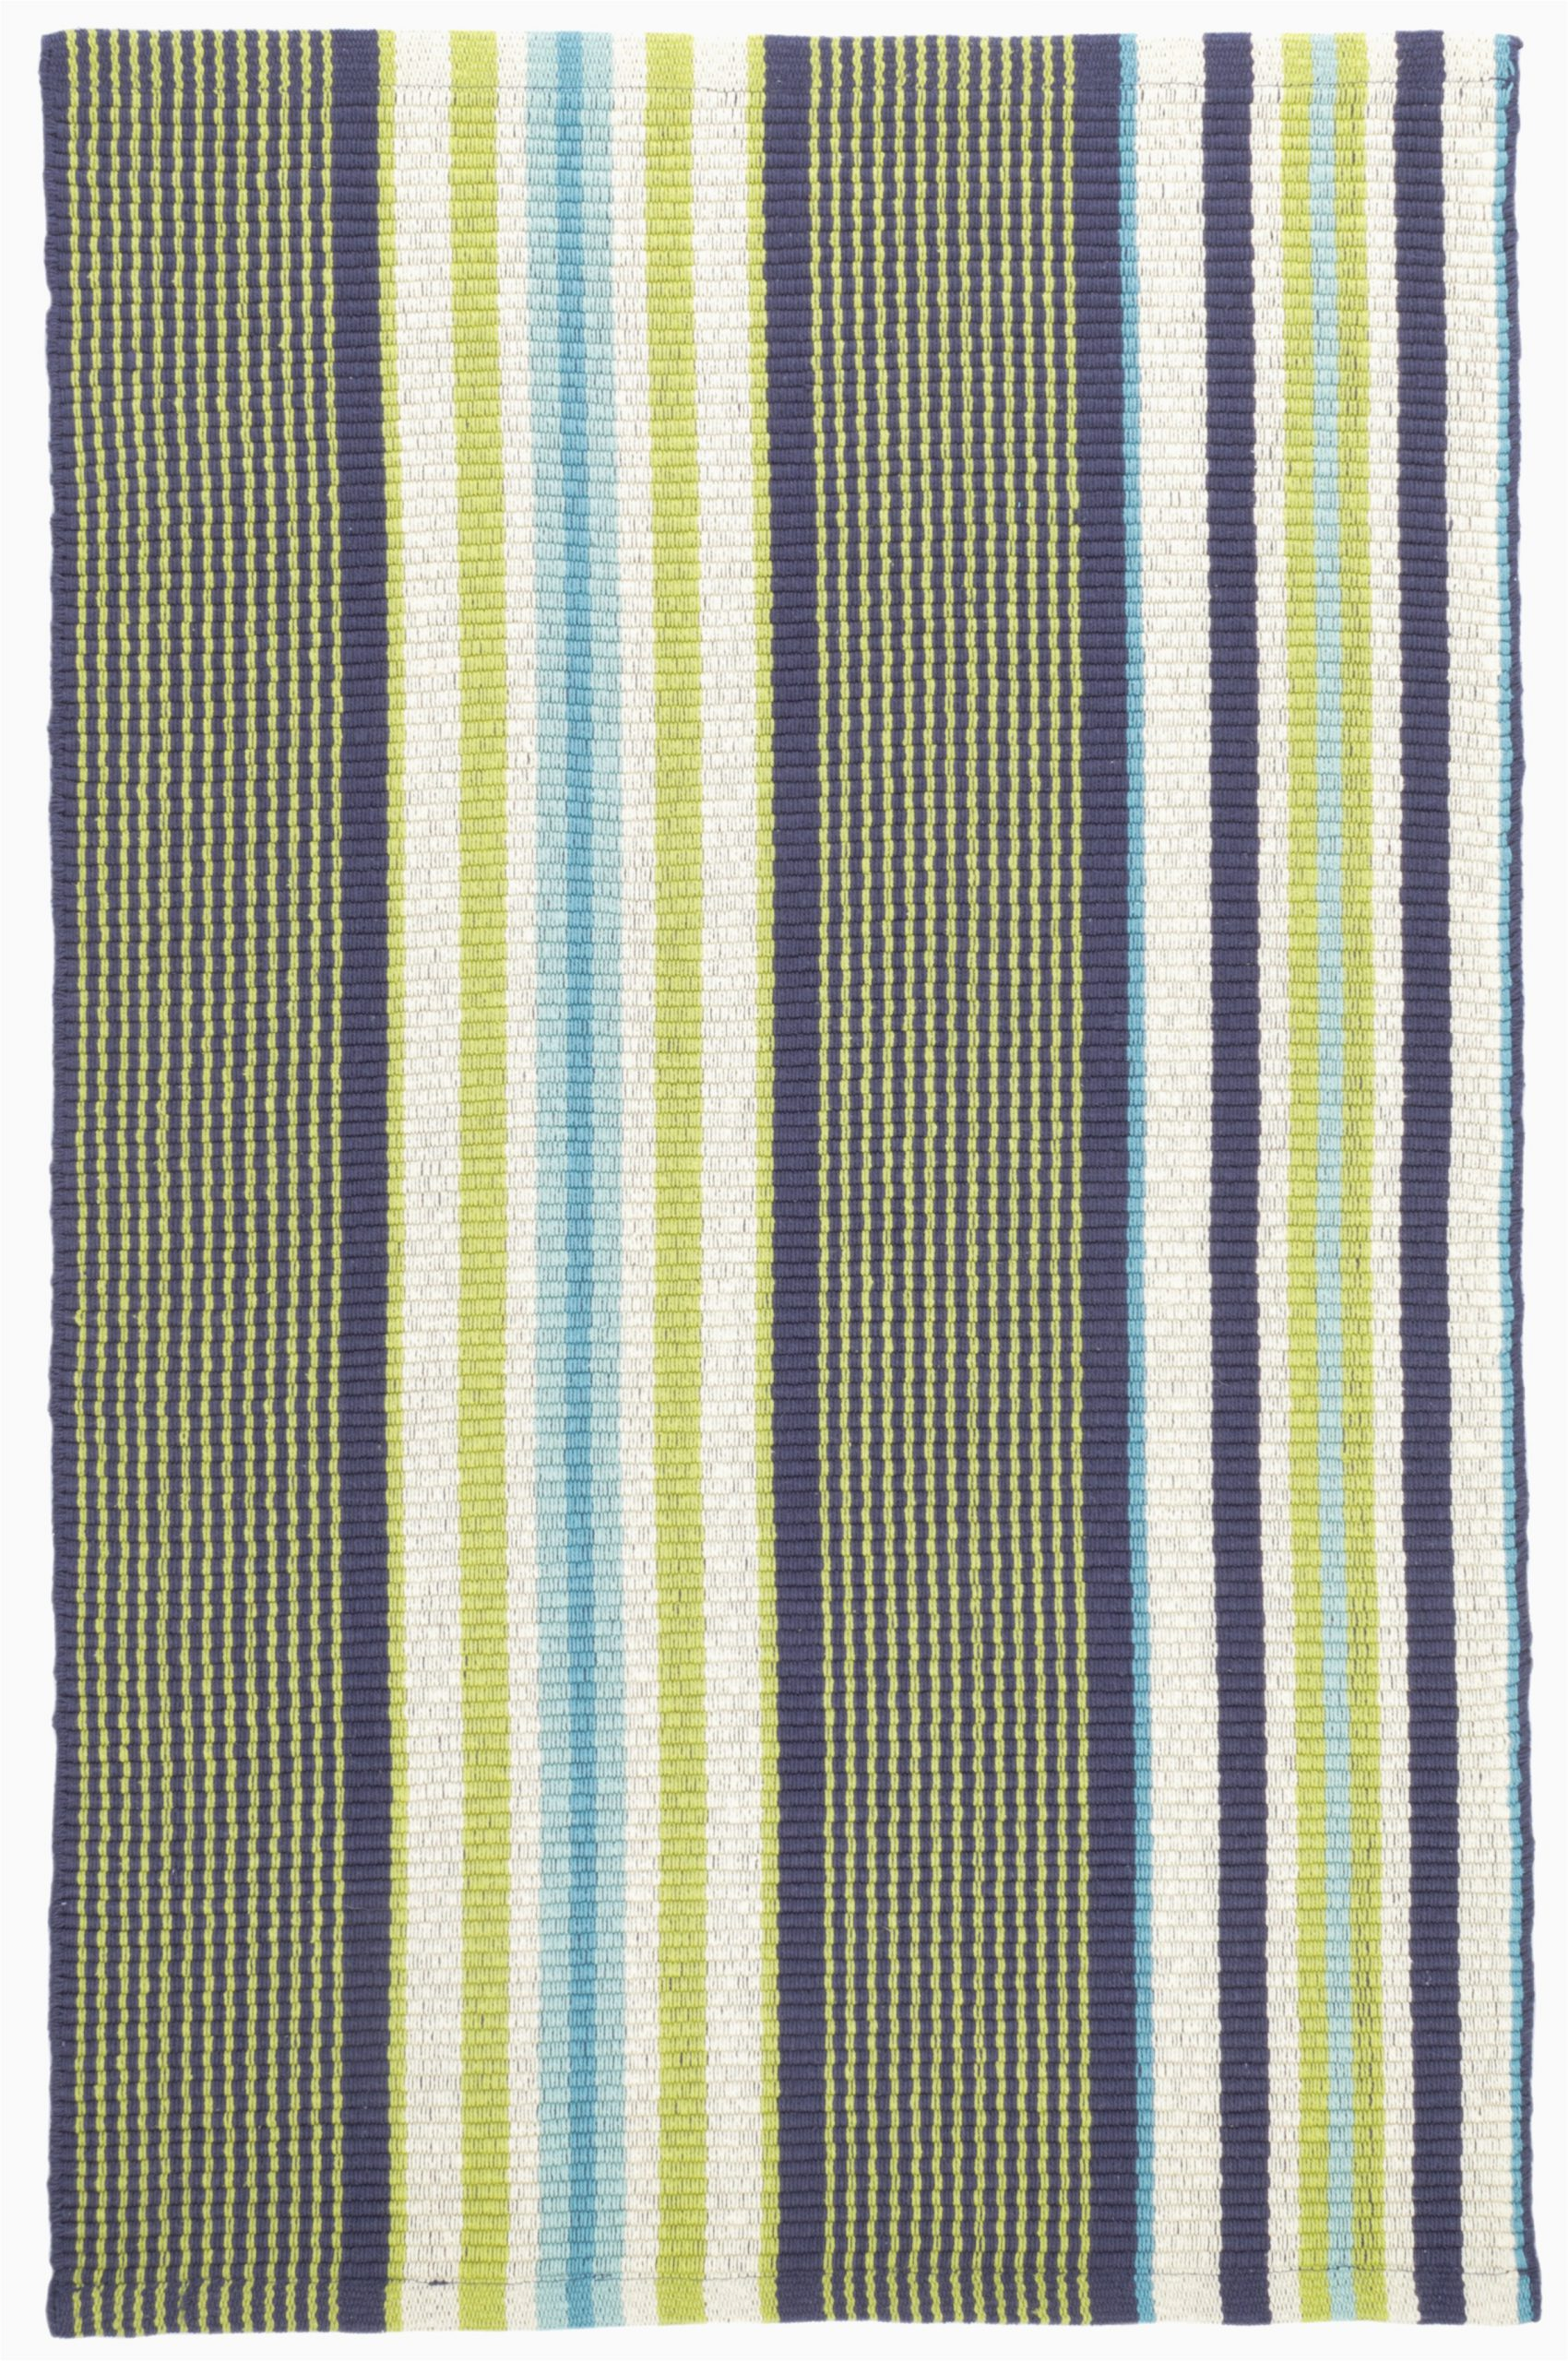 asher striped handmade flatweave cotton bluegreen area rug